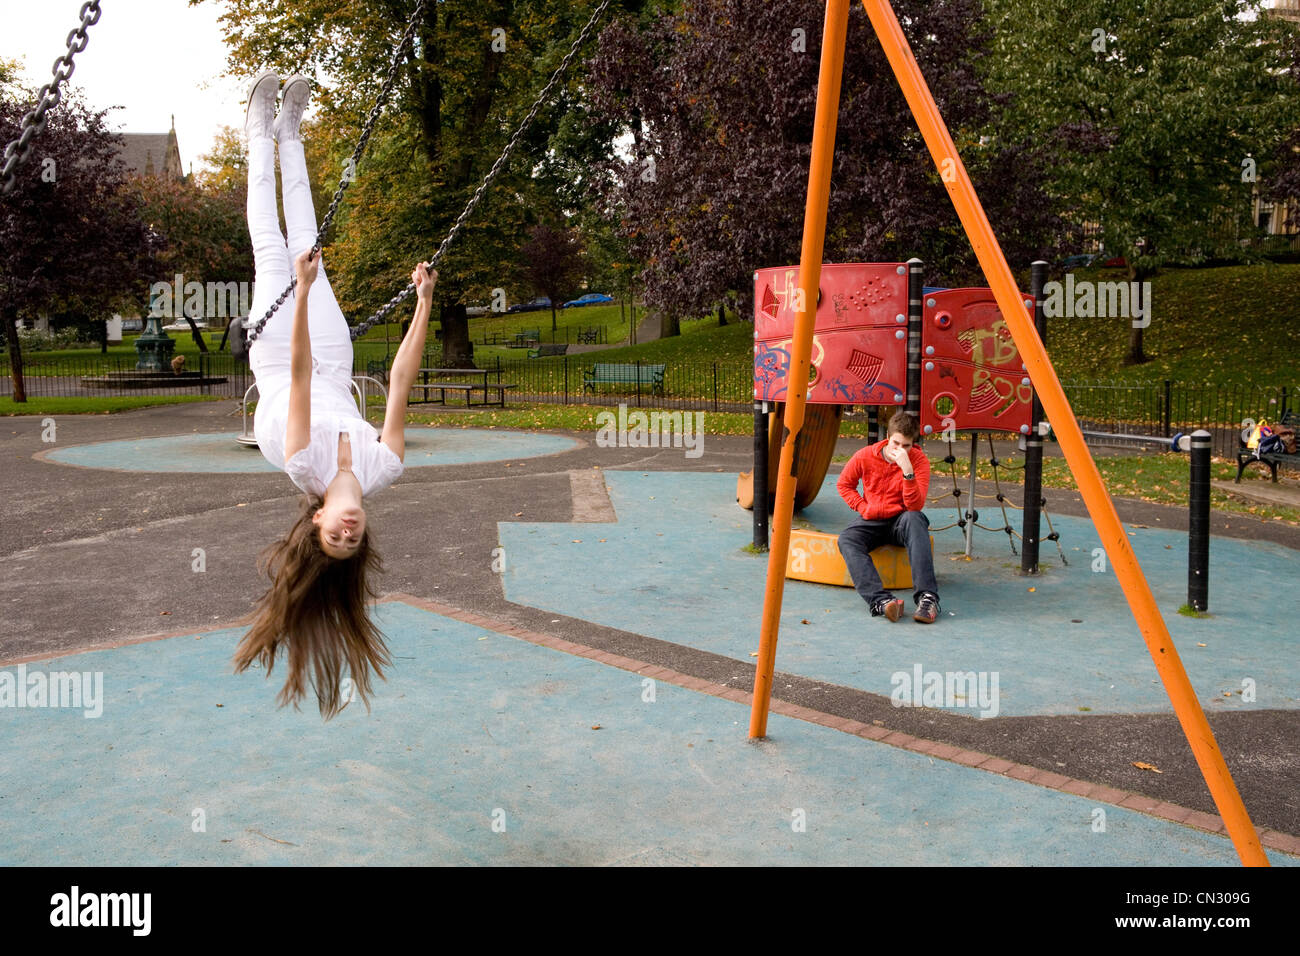 Teenage girl on swing en aire de jeux, à l'envers Photo Stock